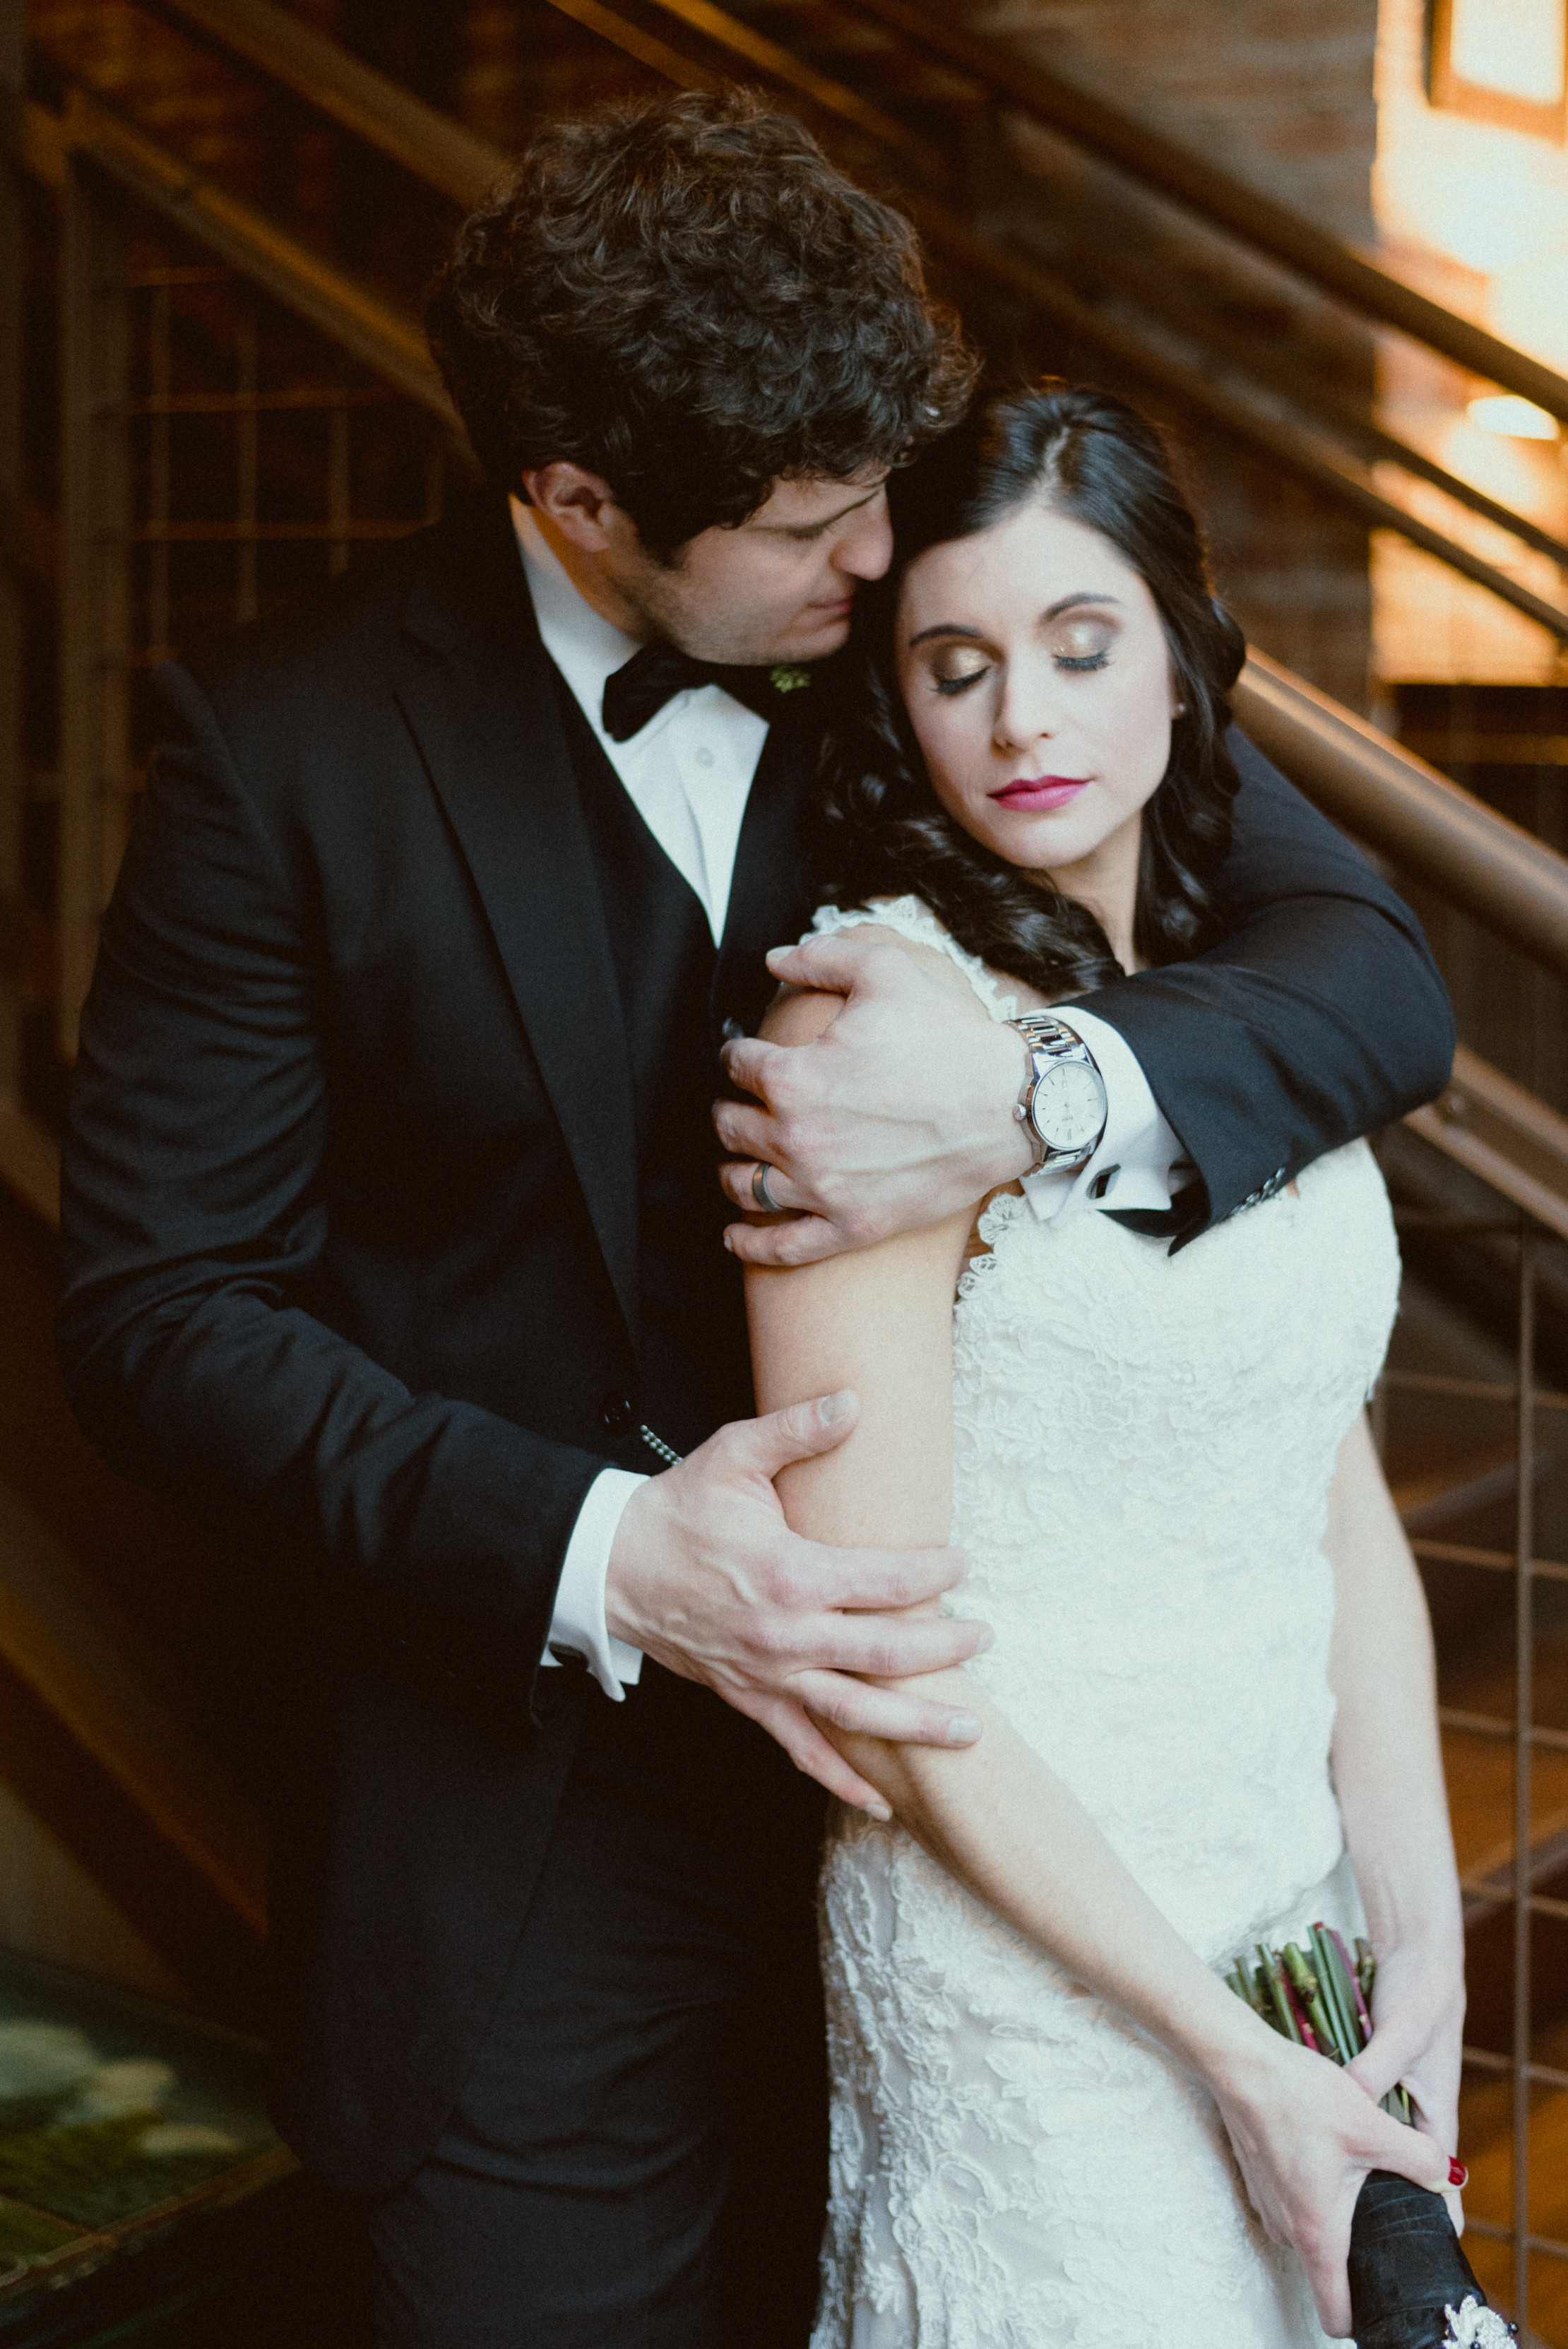 Black and Gold New Year's Eve Wedding - The Overwhelmed Bride Wedding Blog